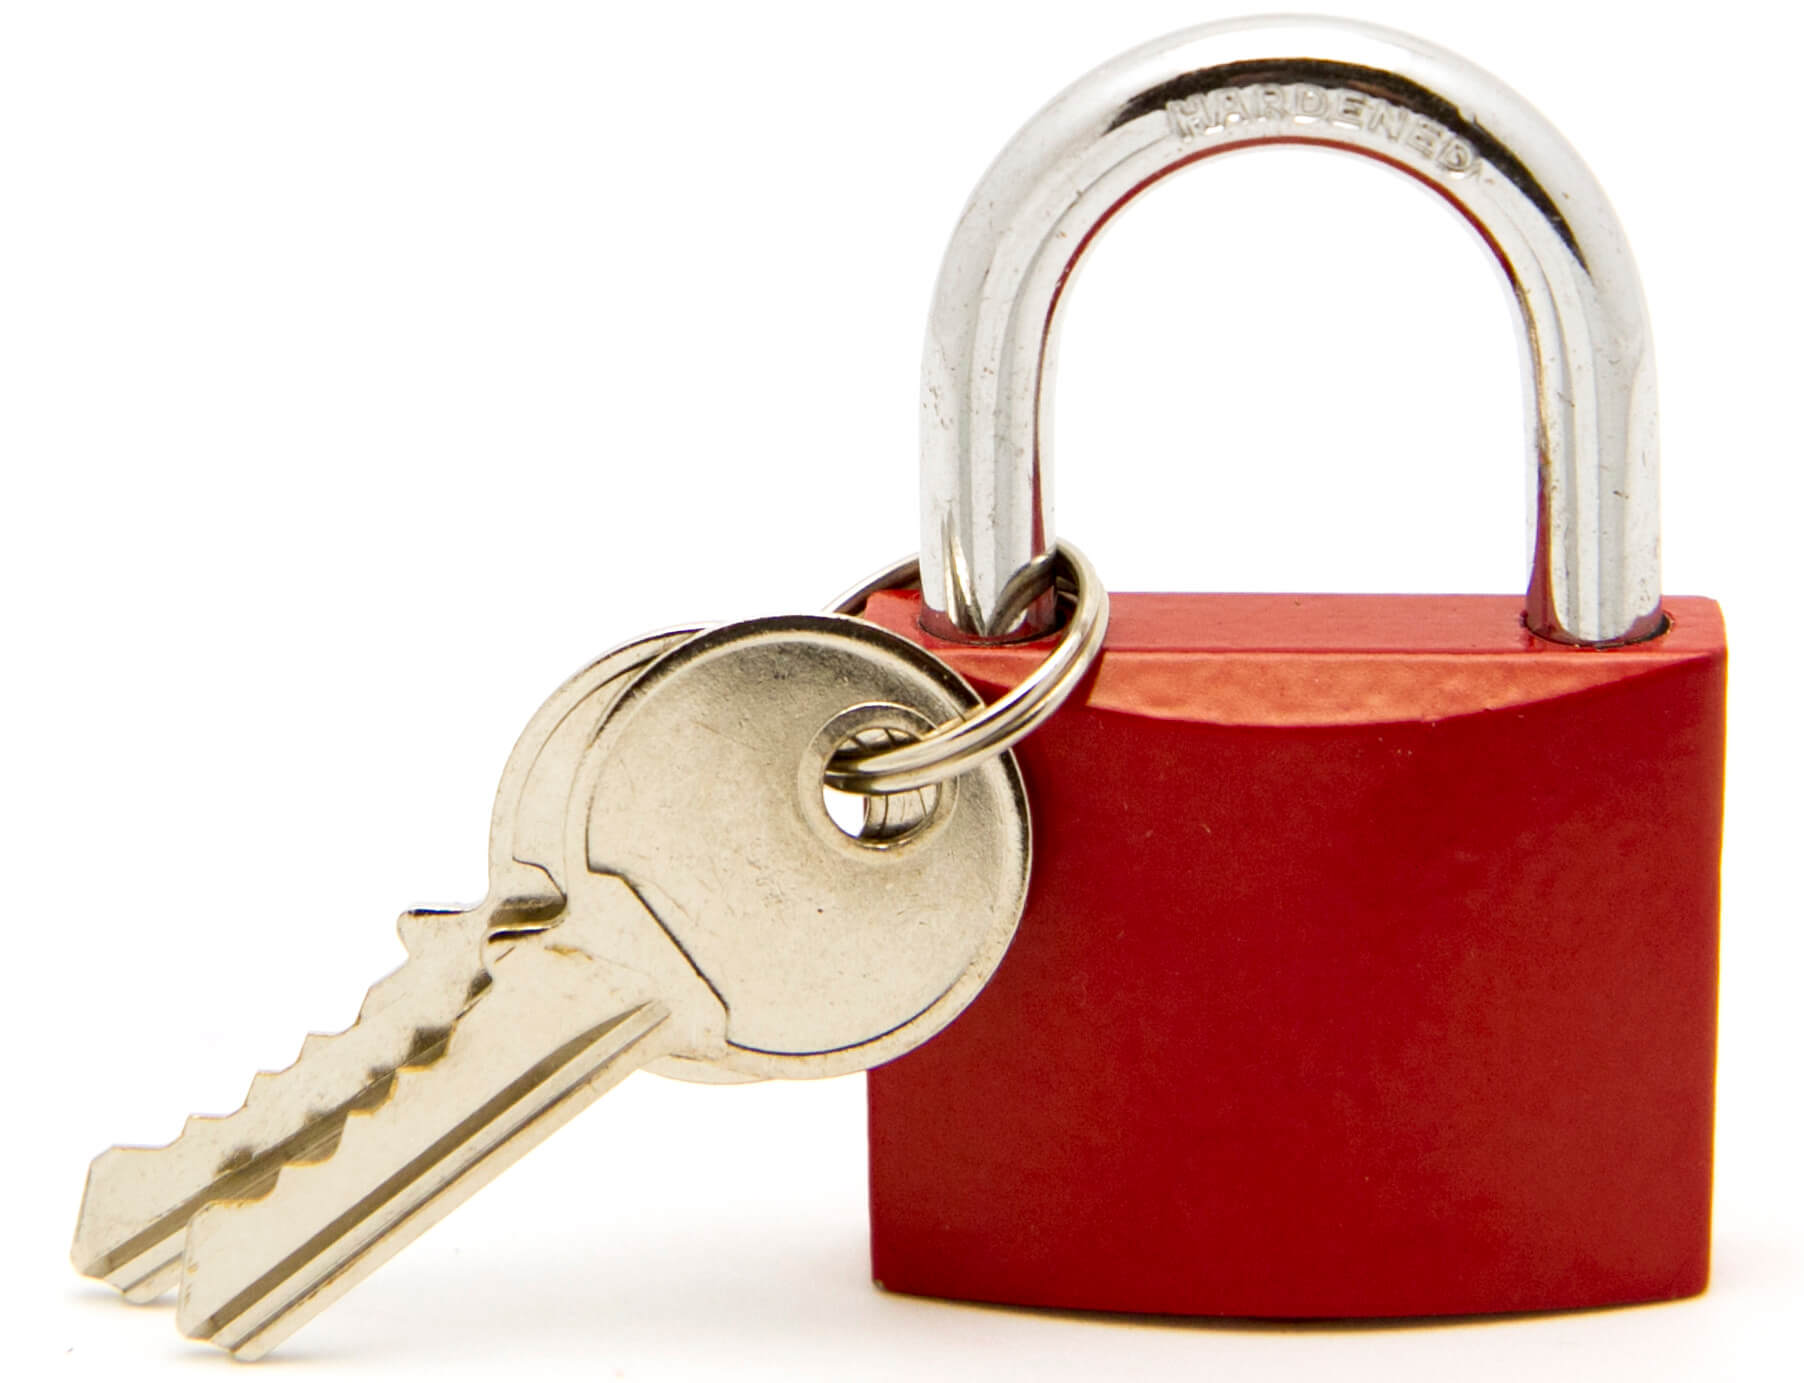 Locks & Security Hardware for Self Storage, Container